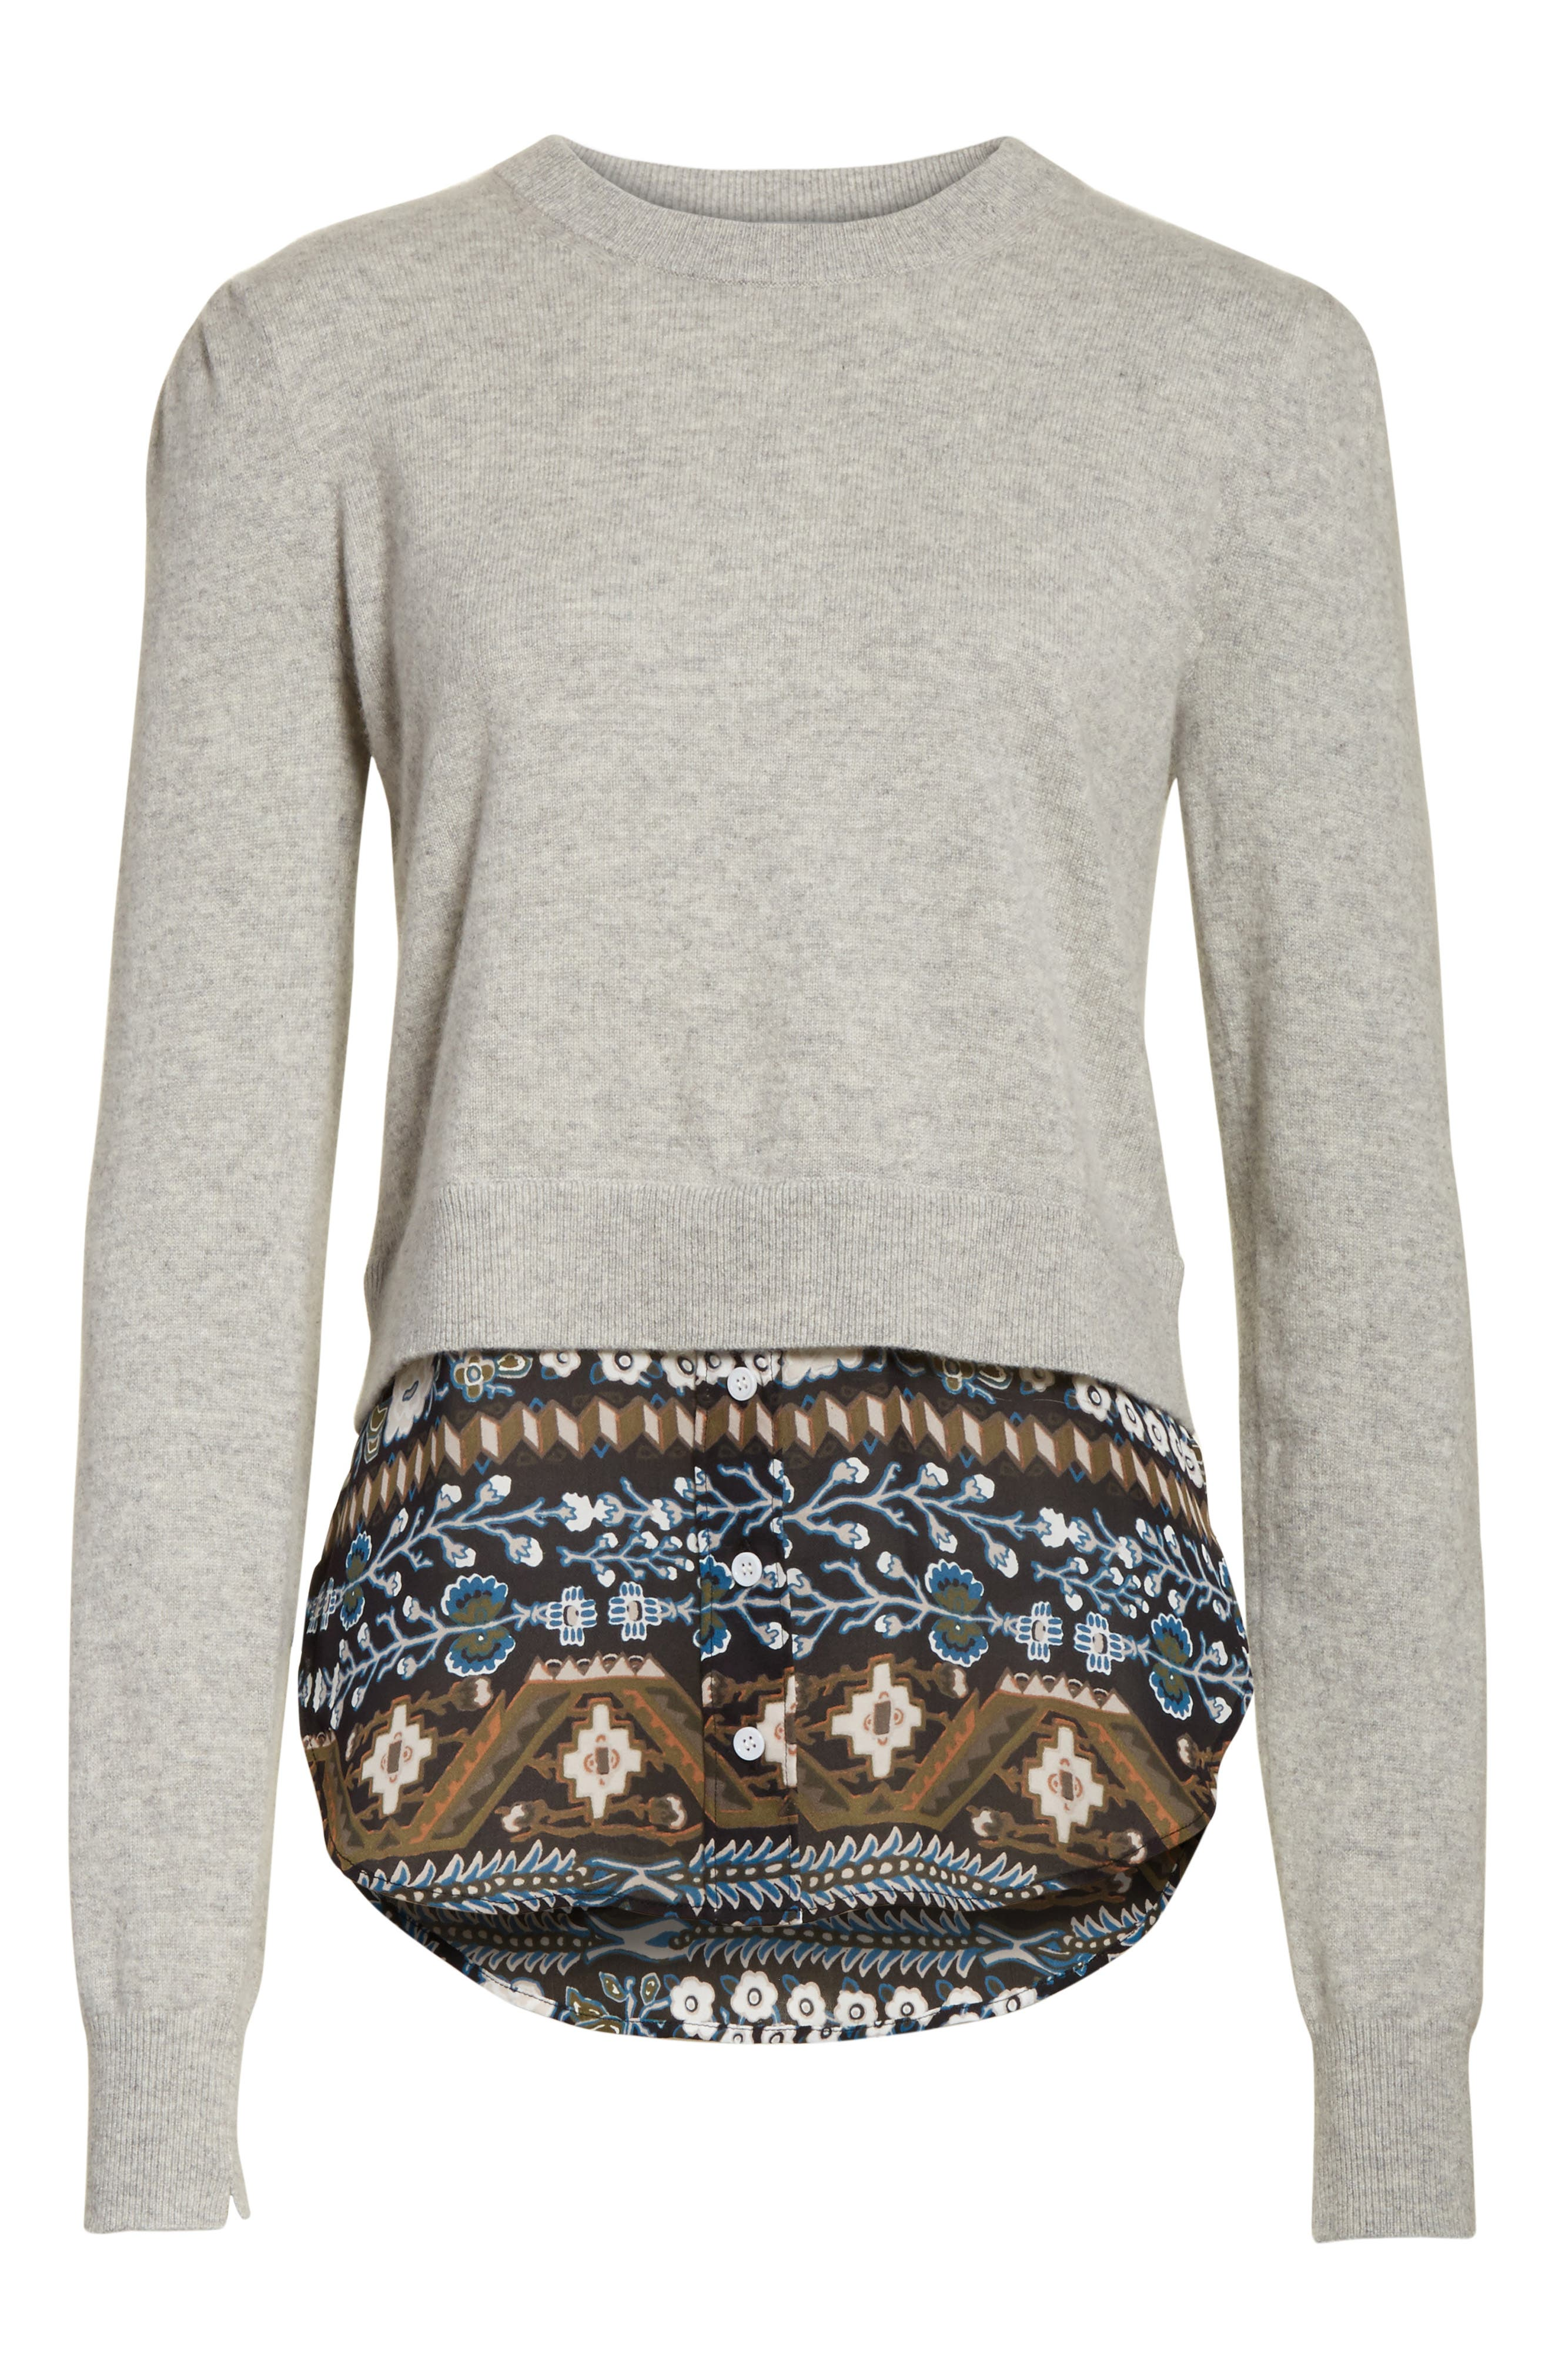 Jenson Layered Hem Cashmere Sweater,                             Alternate thumbnail 6, color,                             Grey/ Army/ Black Aztec Print